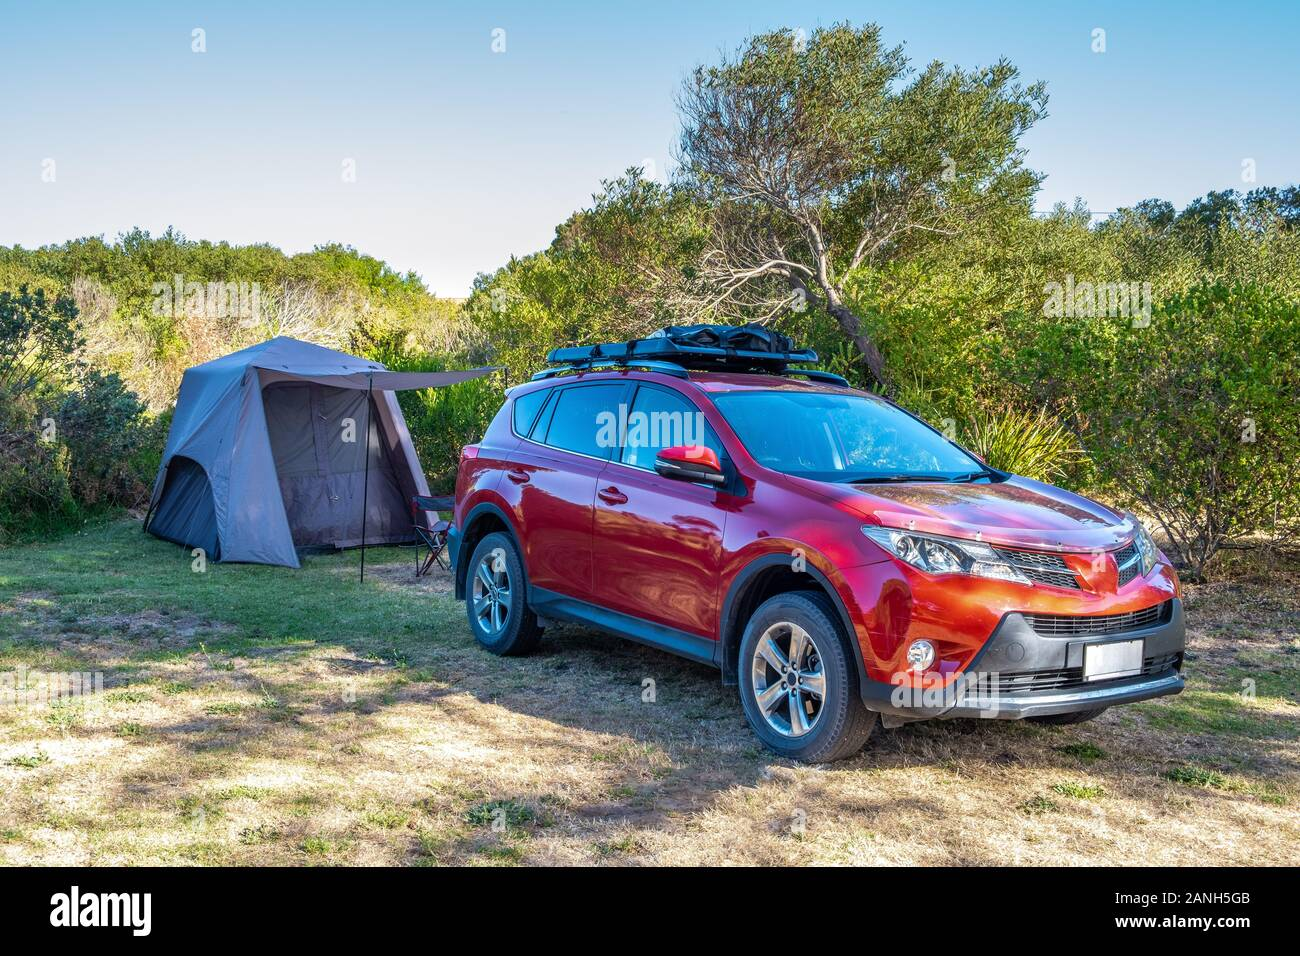 Suv Car And Pitched Tent At A Holiday Park In Australia Stock Photo Alamy